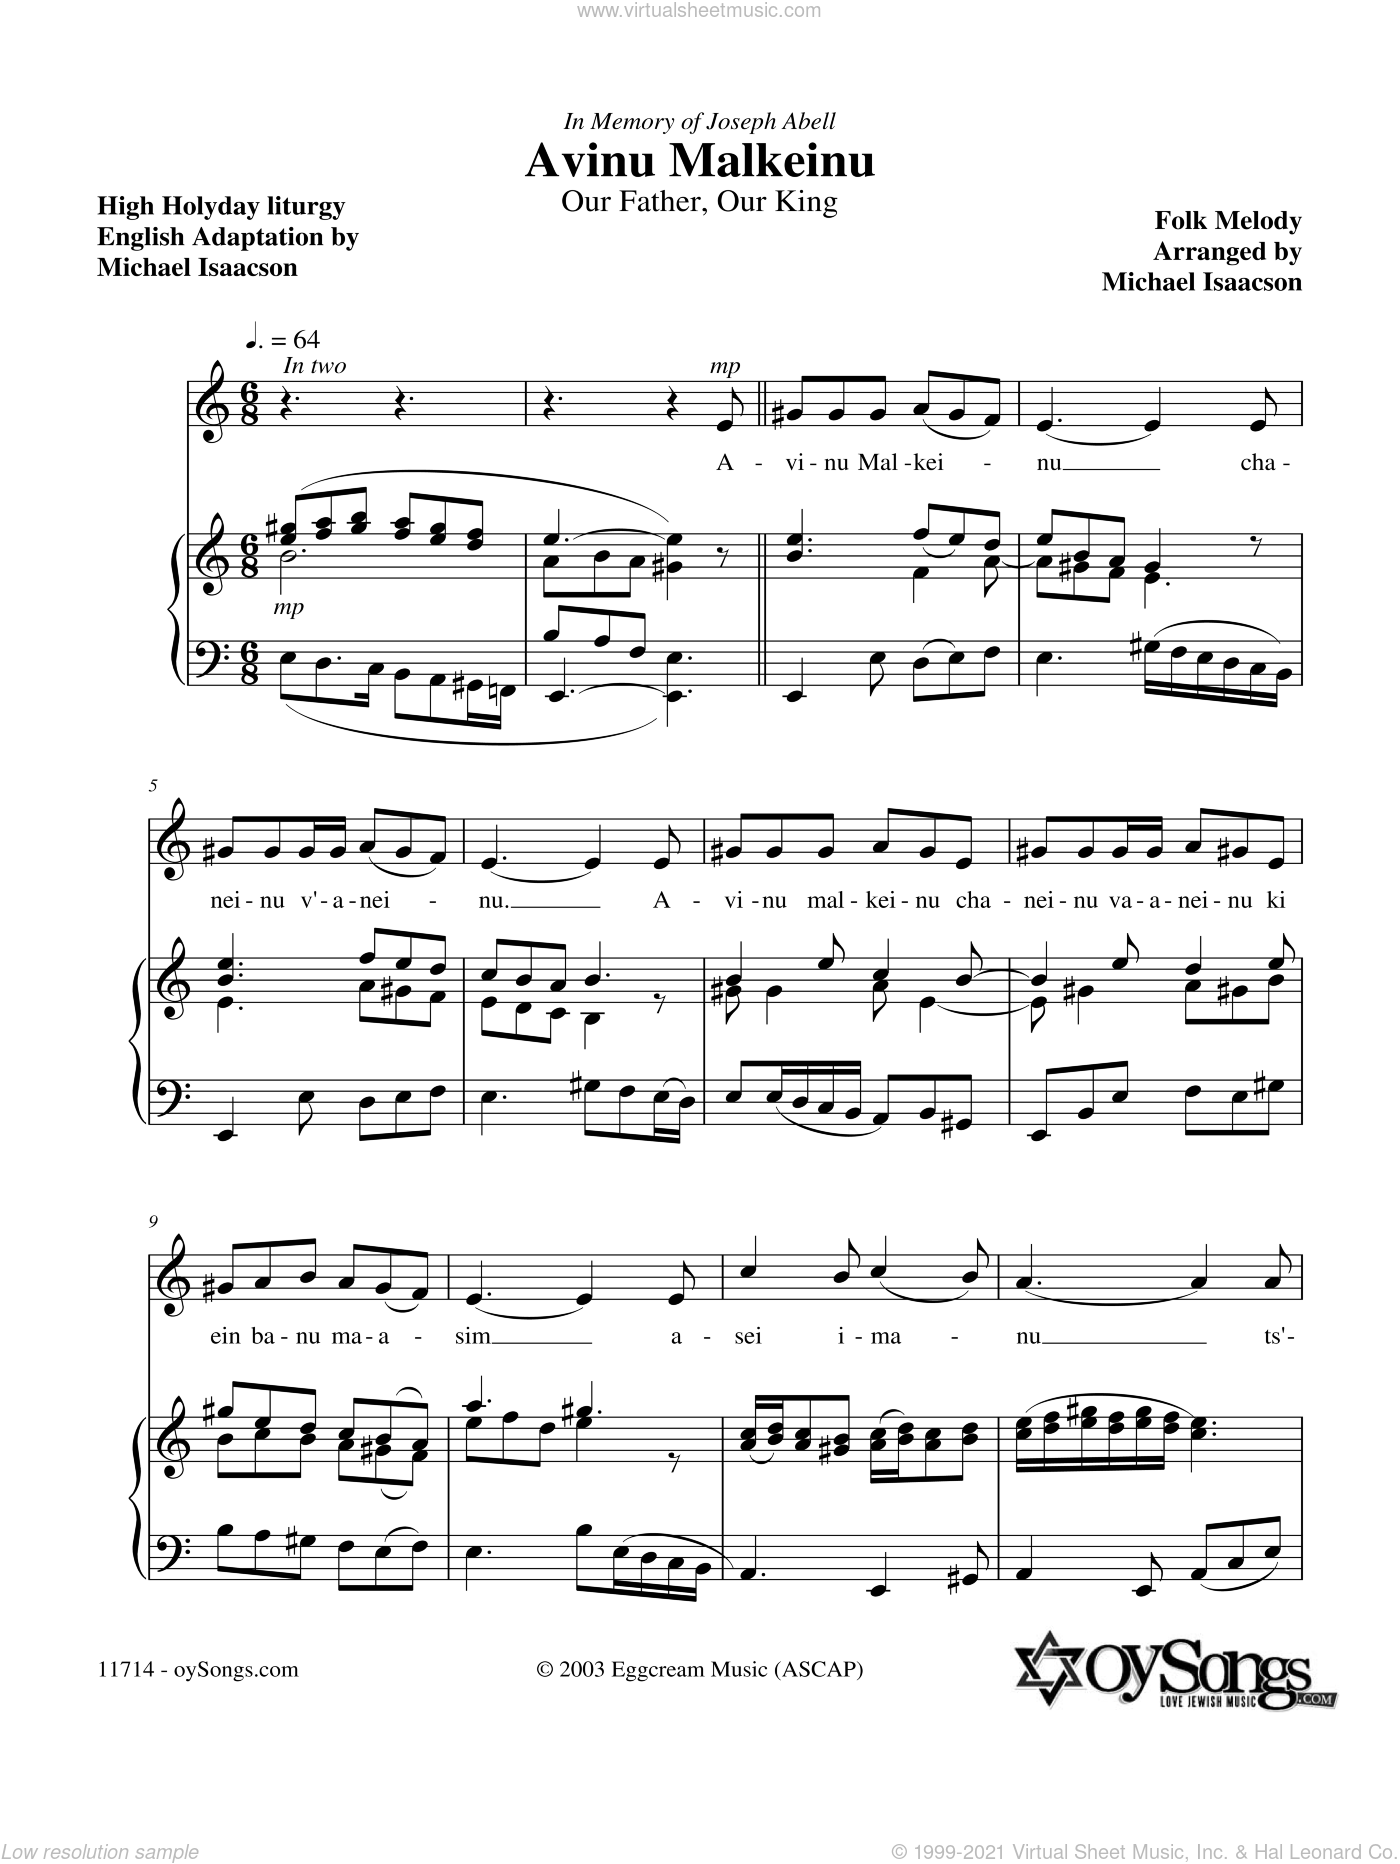 Avinu Malkeinu sheet music for piano solo by Michael Isaacson